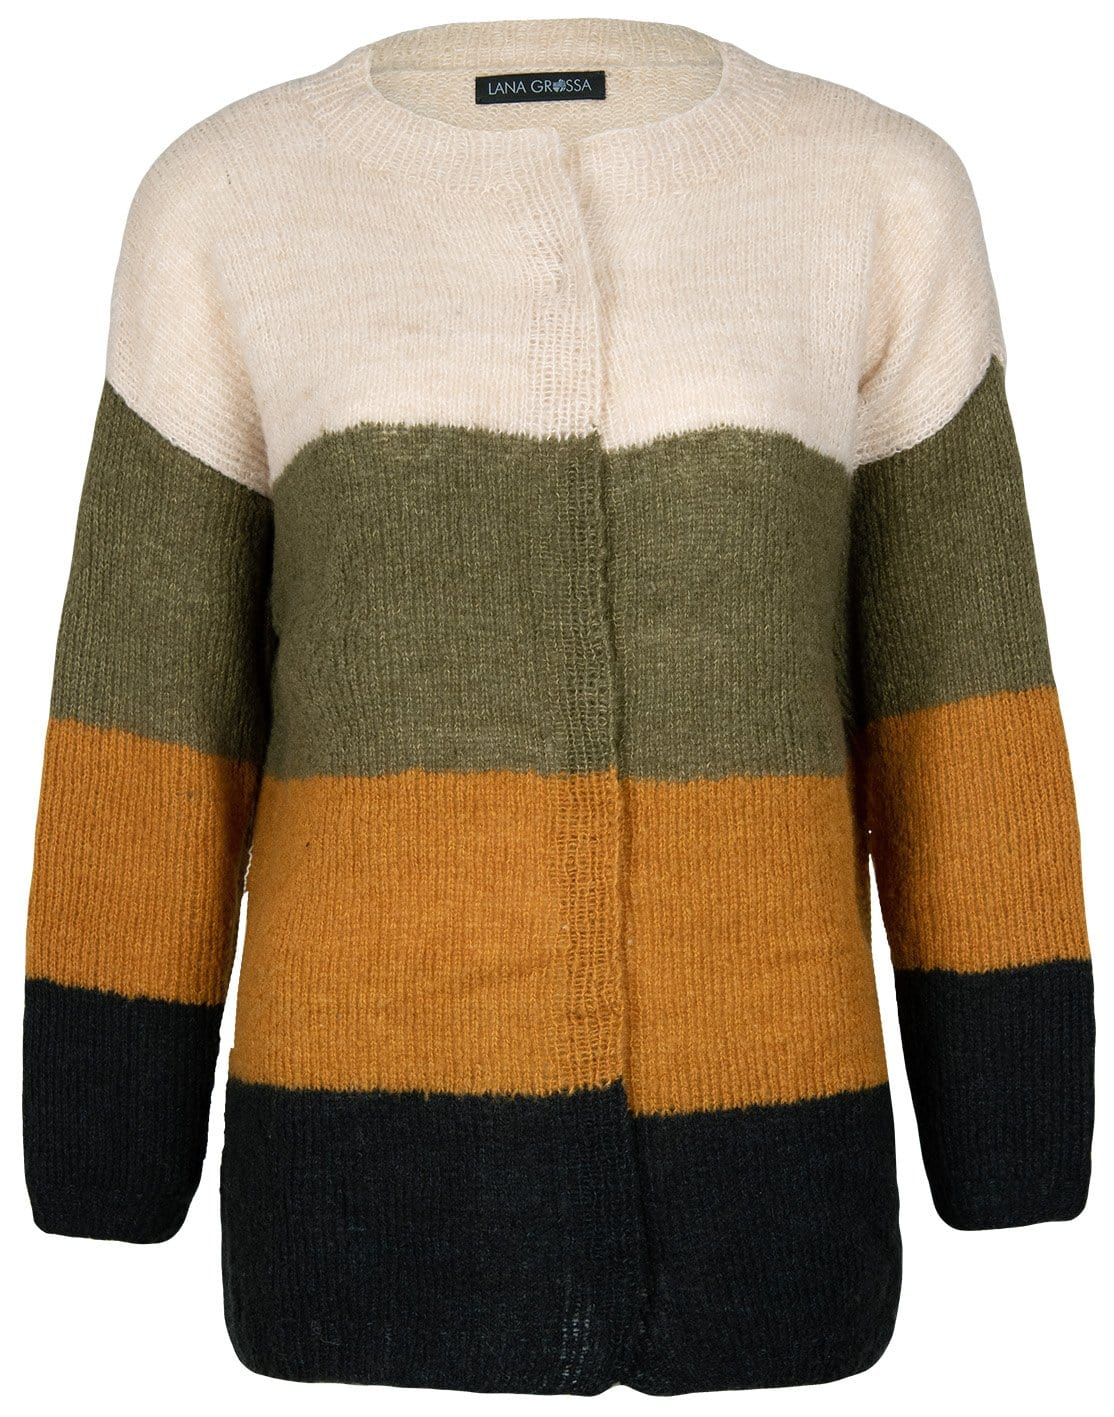 Jacke mit Colourblocks - Strickset